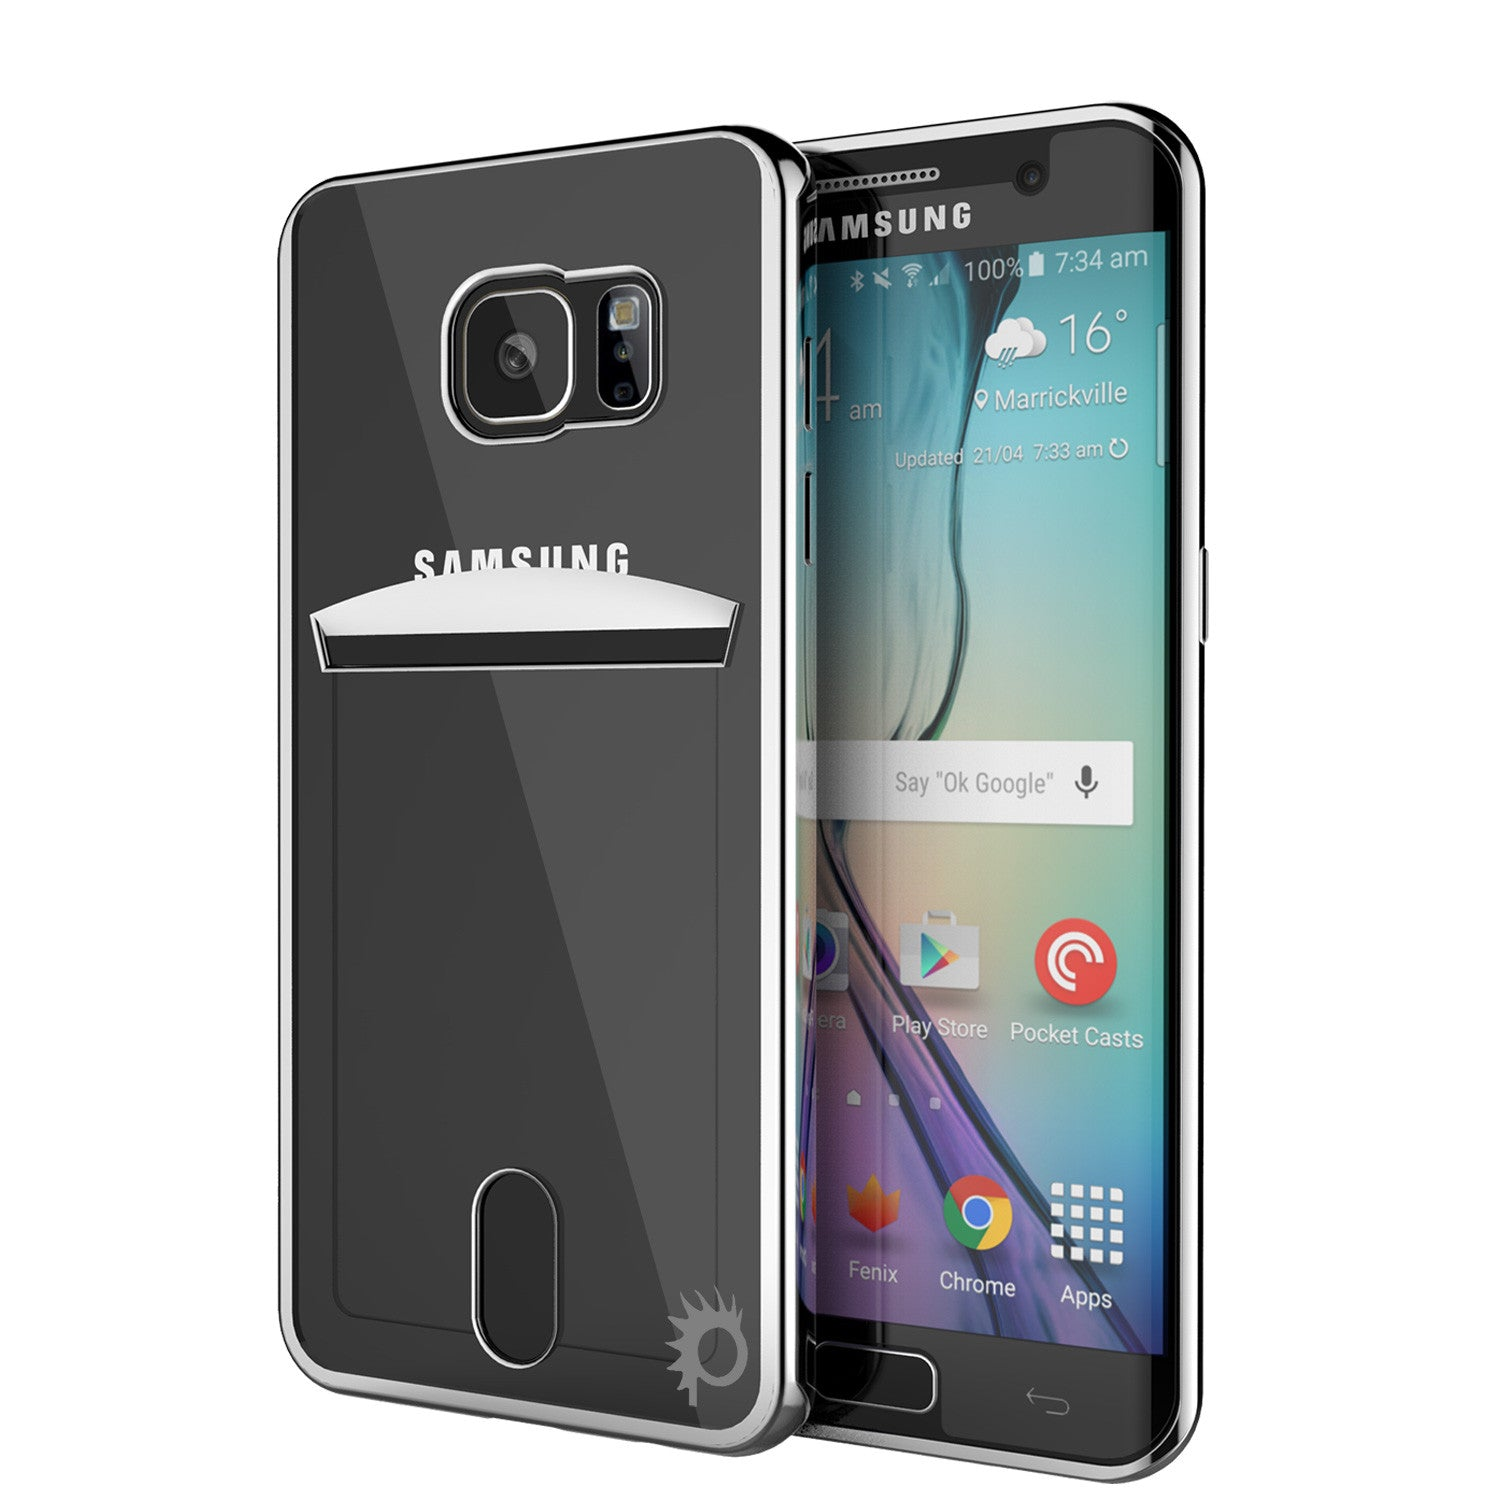 Galaxy S6 EDGE+ Plus Case, PUNKCASE® LUCID Silver Series | Card Slot | SHIELD Screen Protector